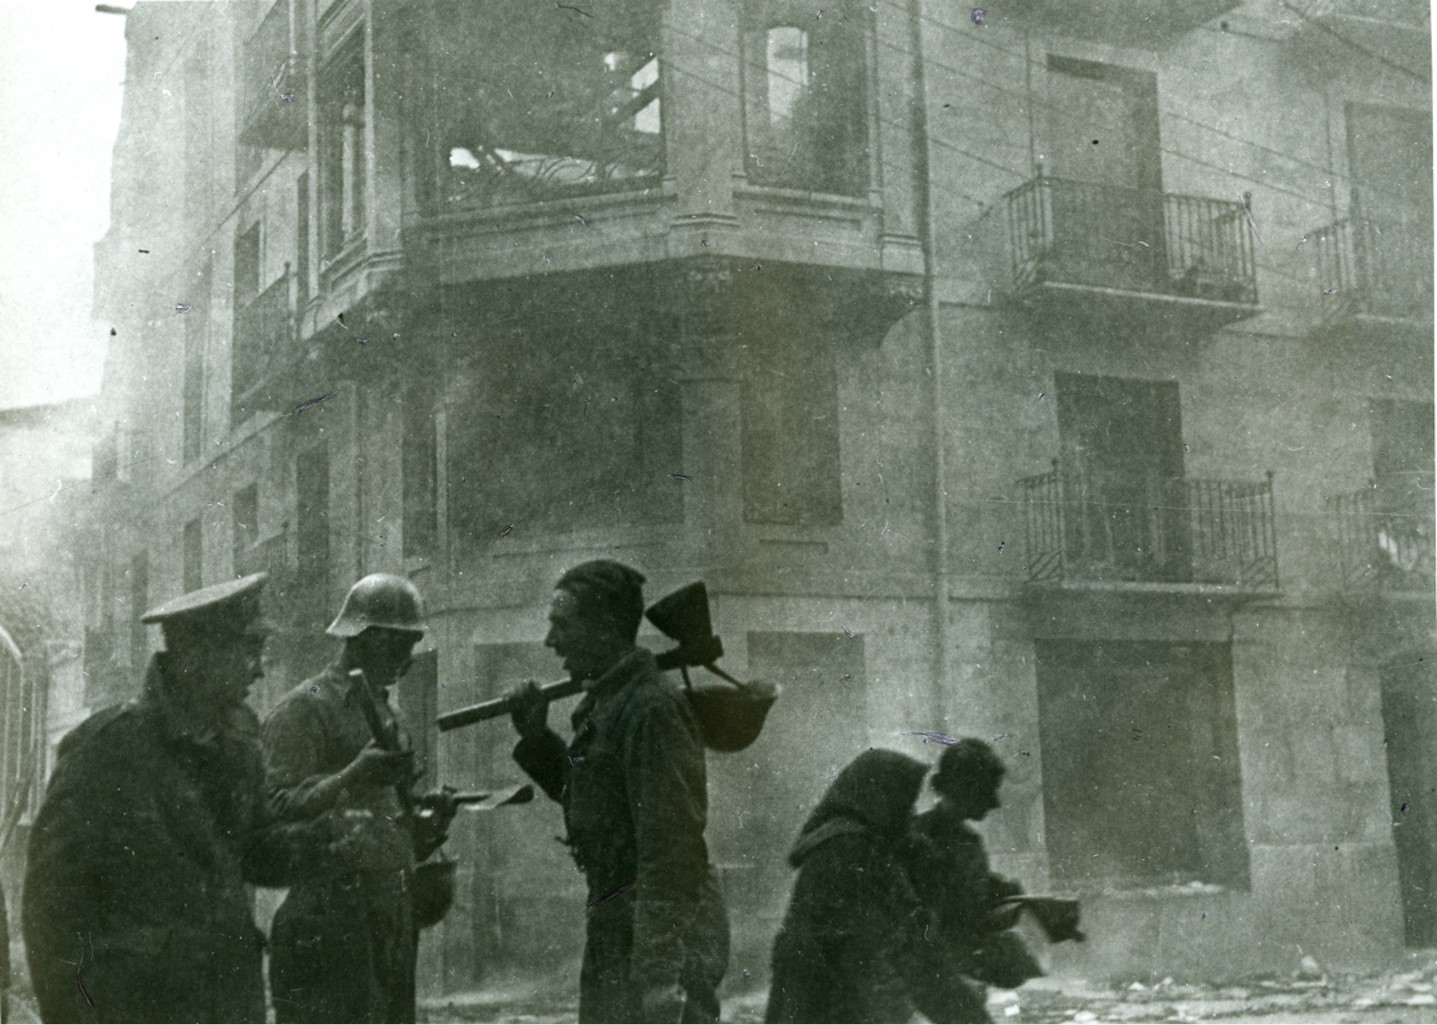 Civilians attempting to soft through rubble in Guernica, Spain.